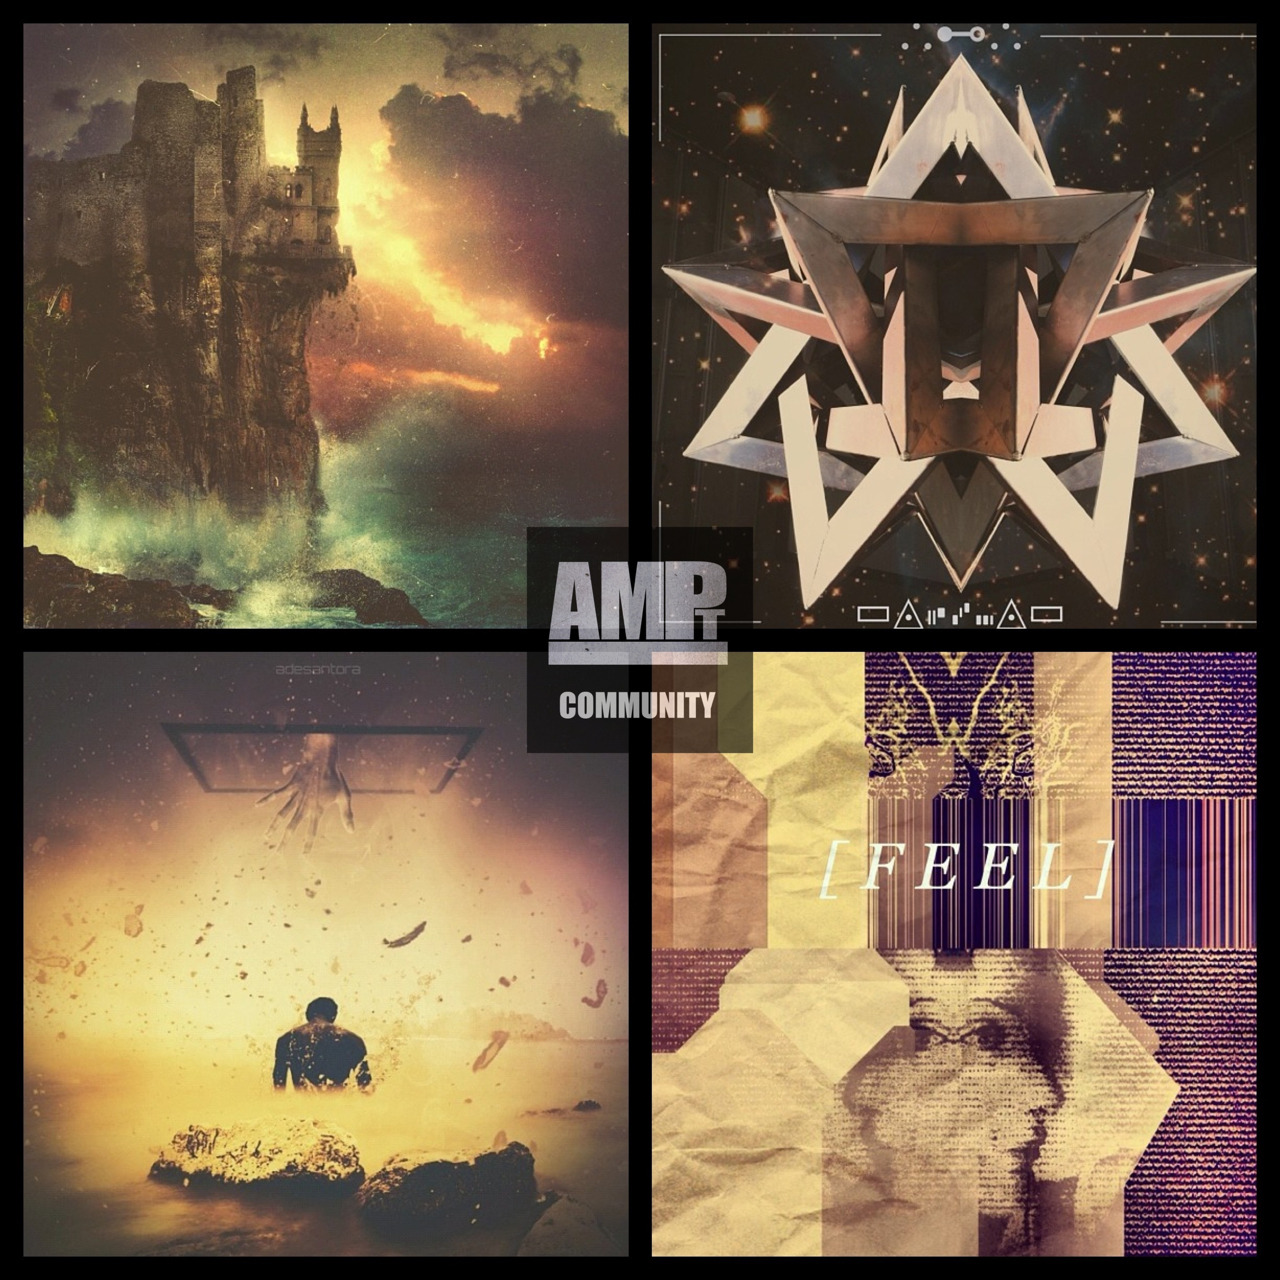 AMPt Community Recommendations   Here are 4 IGers we would like to introduce you to. Stop by their feeds,say hello and check out their editing process for the images above!   Clockwise from top left:   @merekdavis  Shot with native camera Apps used: blender, artstudio   @jesserather27  Apps used: diptic, blender, galaxyFX   @muzbanger  Shot with native camera  Apps: decim8, blender, montage    @adesantora  Shot with standar cam  Apps used:filtermania2, superimpose, photoforge, snapseed      Thank you for sharing with #AMPt_Community! Interested in having your work seen and considered for a spotlight? Tag to #Ampt_Community and include apps used and your editing process in the comment.    TIP: Listing the apps used to shoot/edit is a requirement for all nominated/featured images. Make your image standout by providing this information!